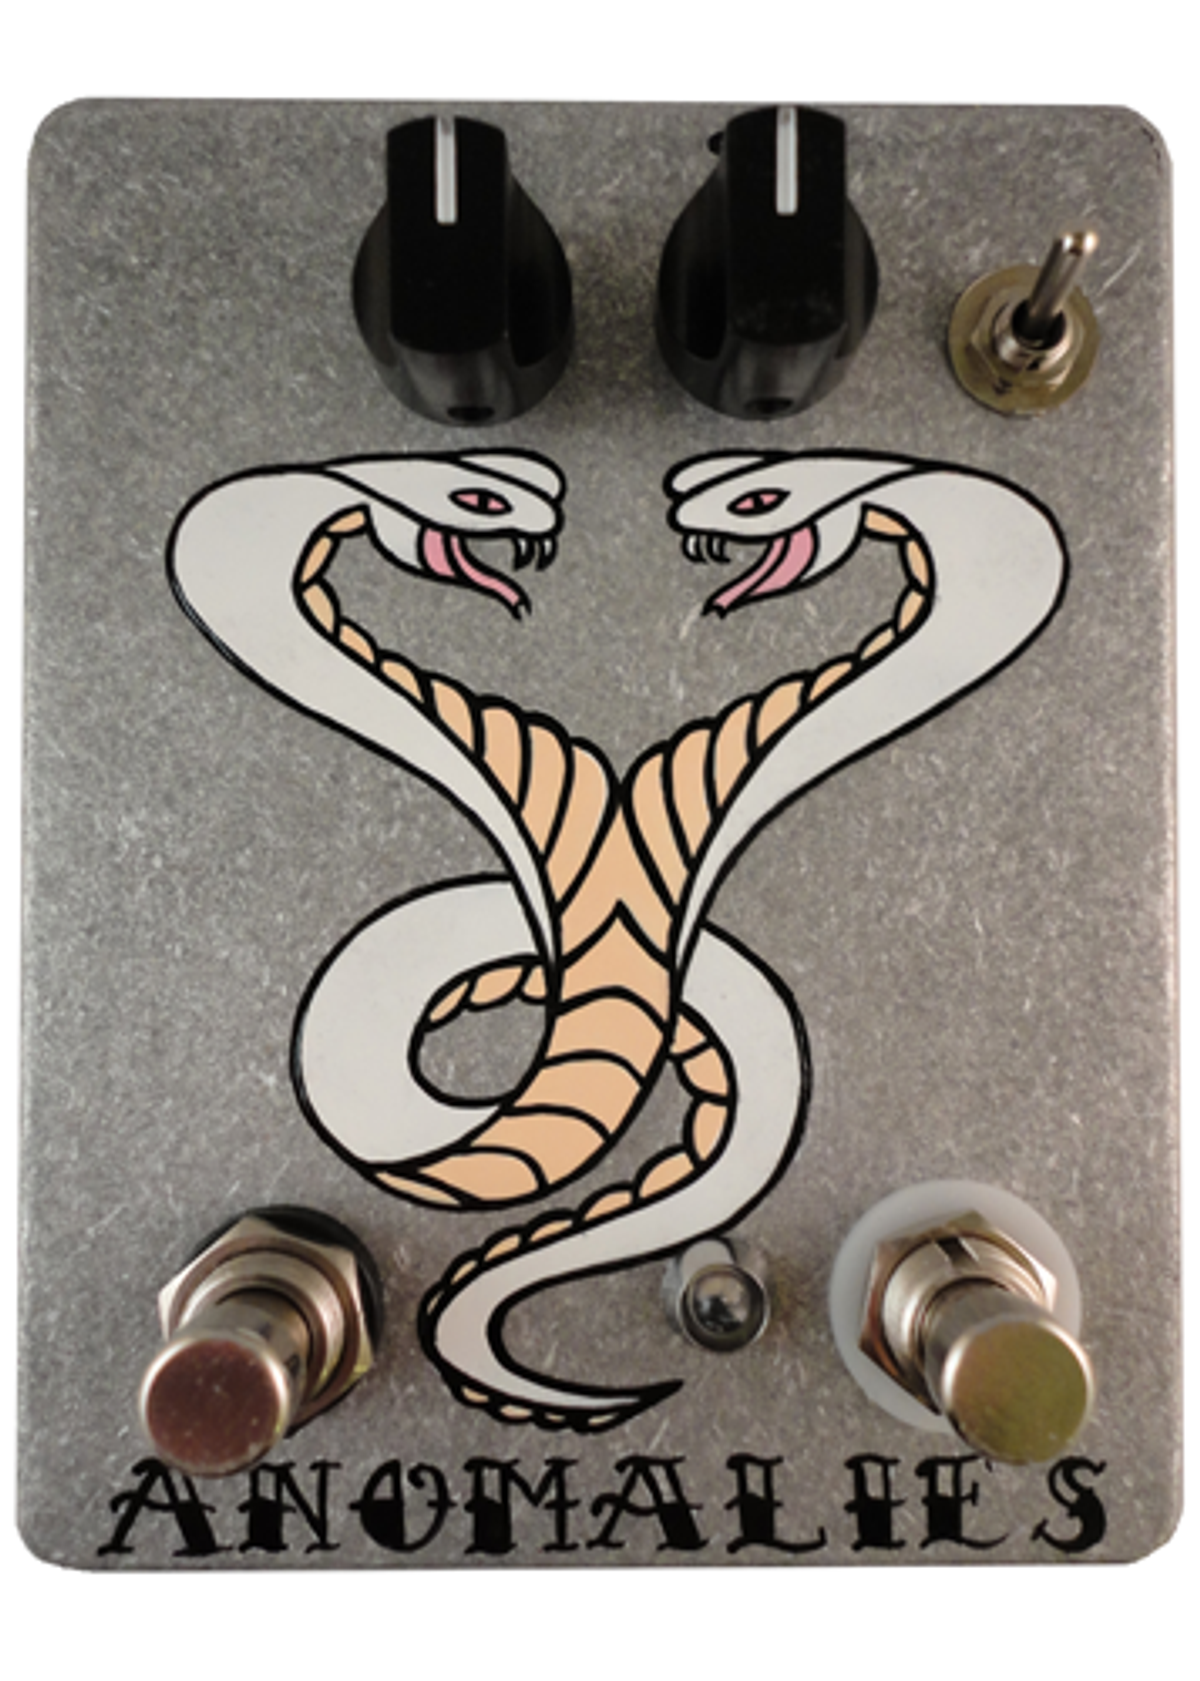 Fuzzrocious Pedals Announces the Anomalies and Feed Me